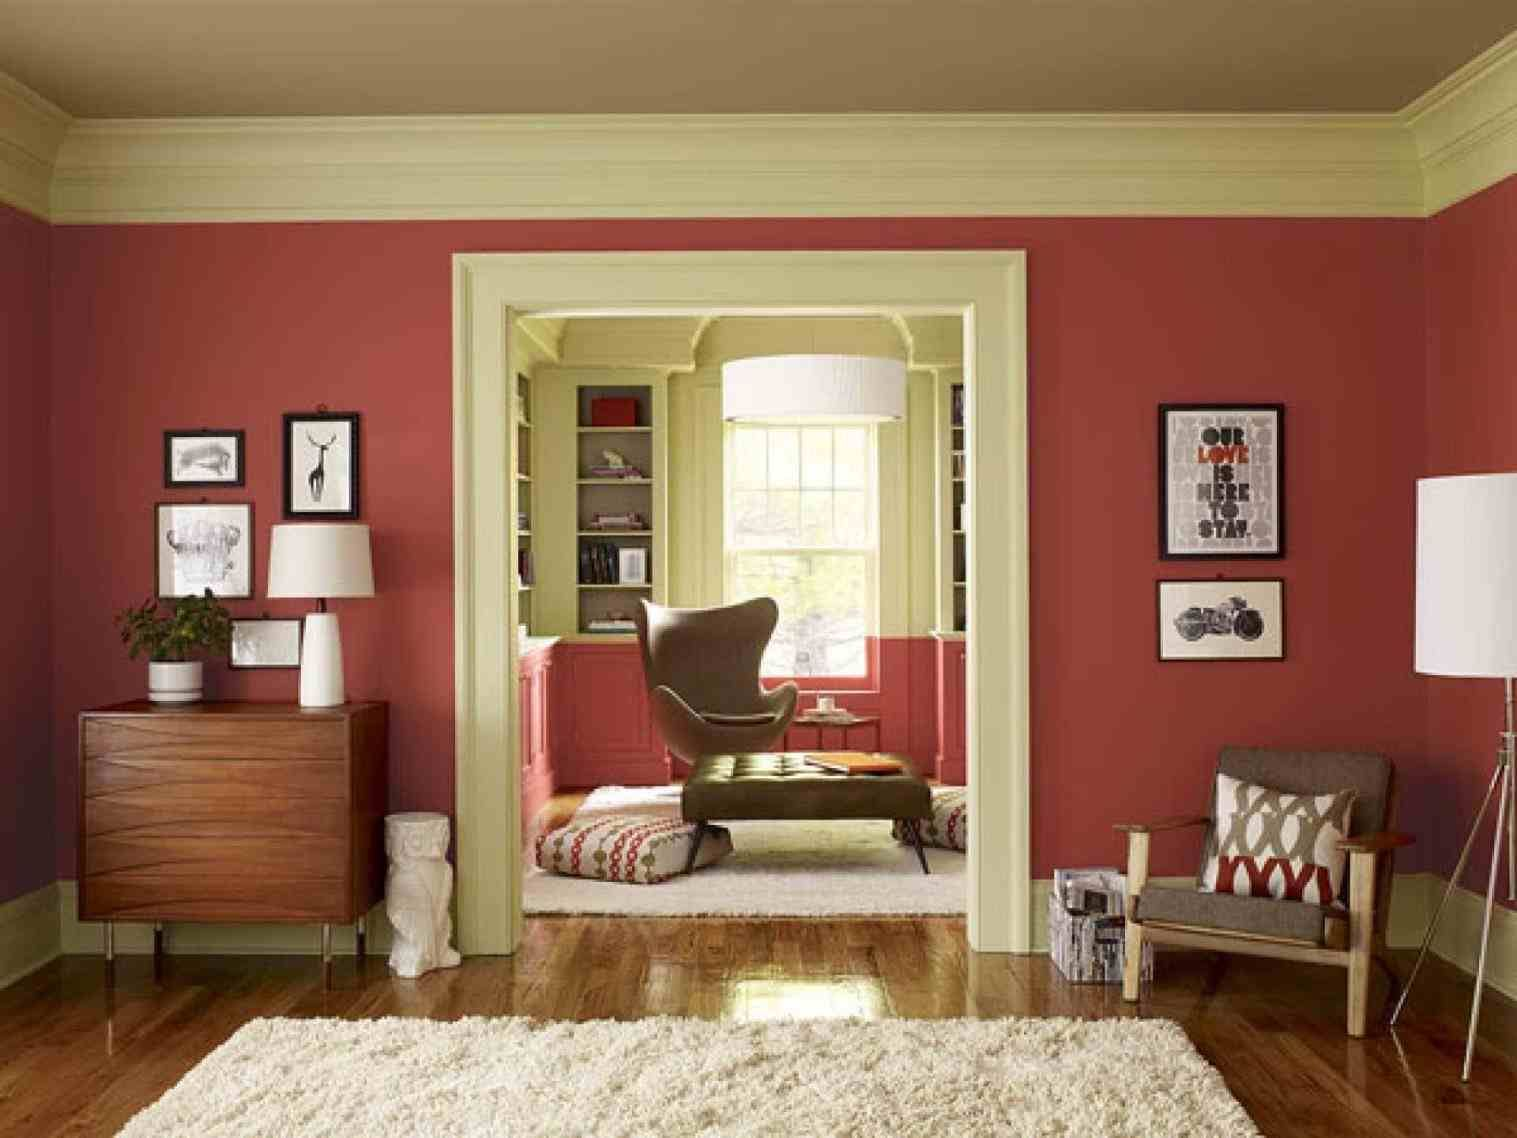 Living Room Colors Vastu Designer Swivel Chairs For Colour Combination Bedroom Walls According To Home Ideas New Post Visit Bobayule Trending Decors